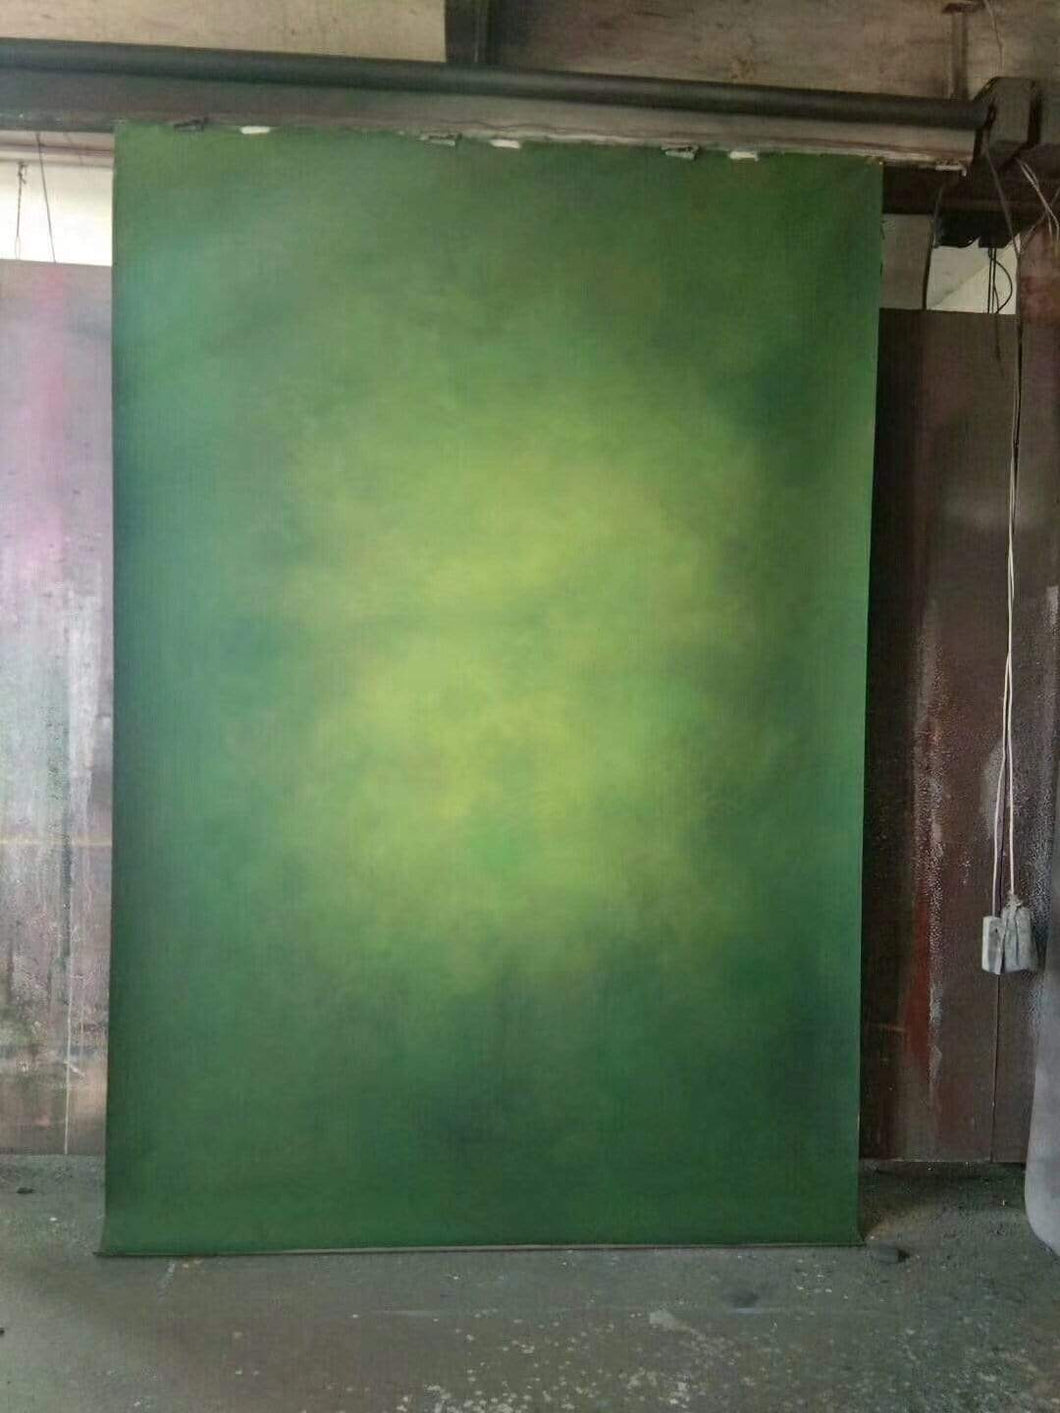 Katebackdrop£ºKate Foggy Green Abstract Gradient Texture Spray Painted Backdrop